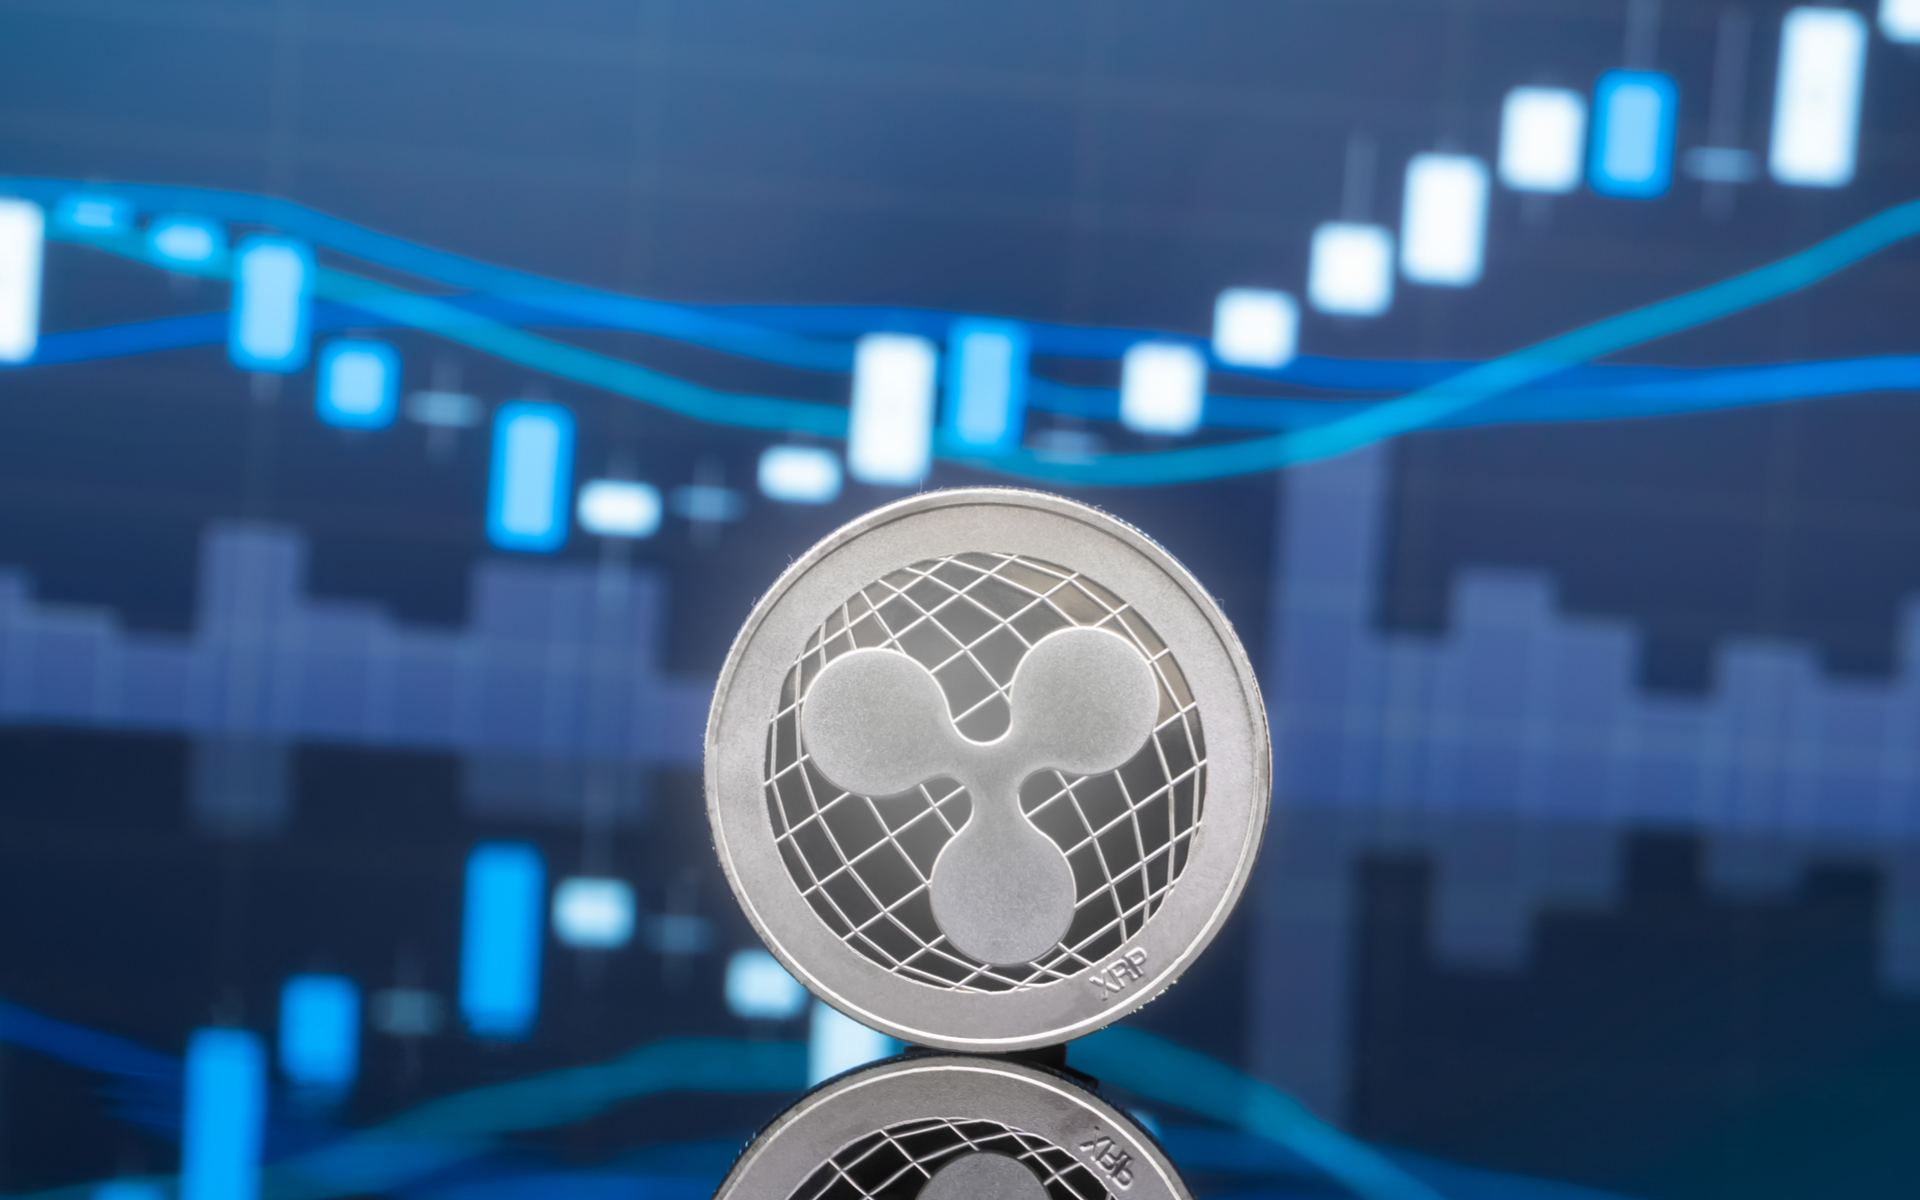 Ripple (XRP) Overtakes Ethereum as Second Biggest Crypto By Market Cap